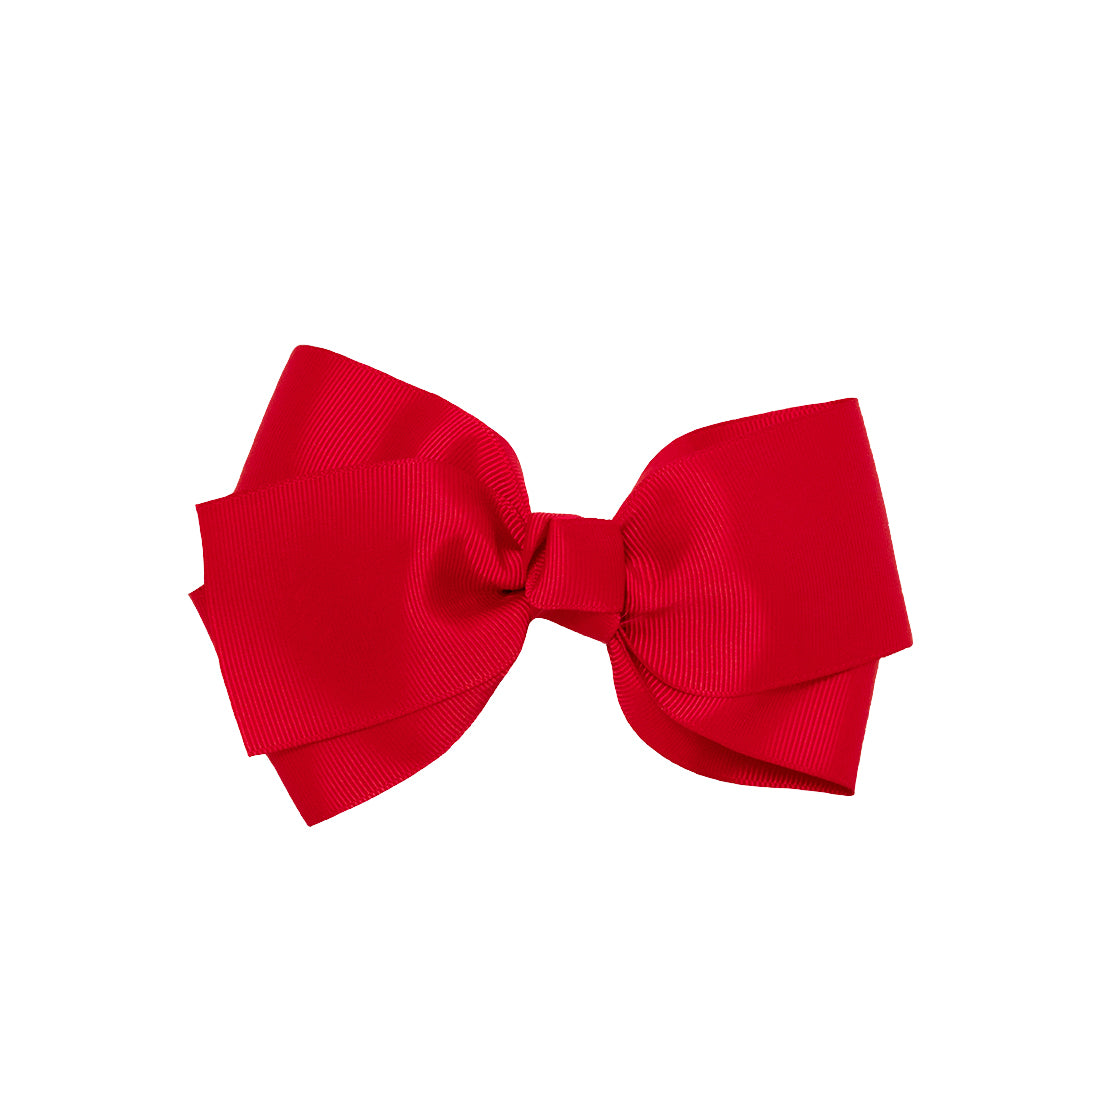 Mia® Spirit Grosgrain Ribbon Bow Barrette - large size - red color - designed by #MiaKaminski of Mia Beauty